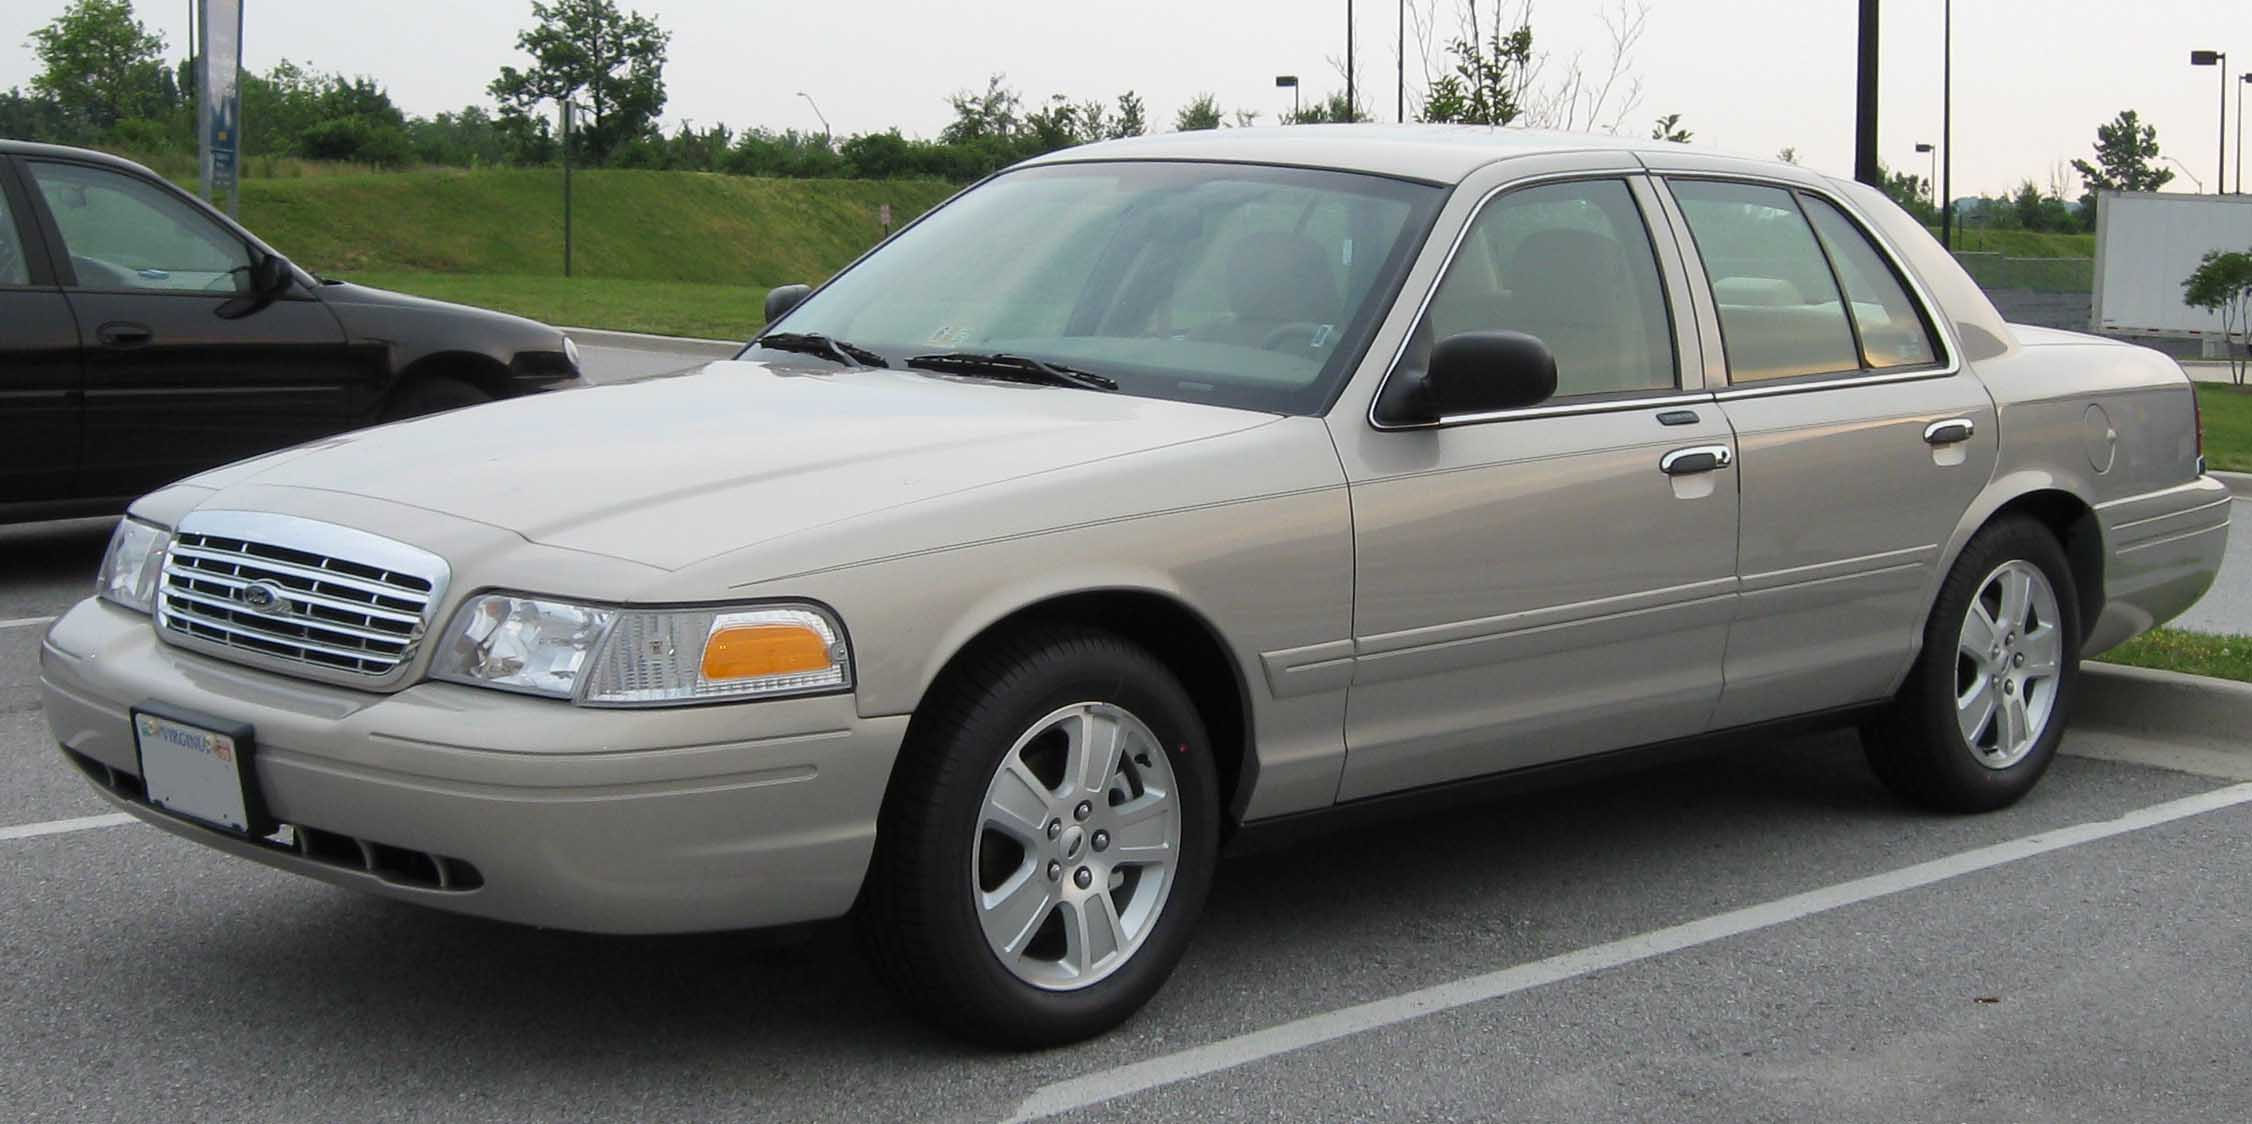 Ford Crown Victoria 2006 #2